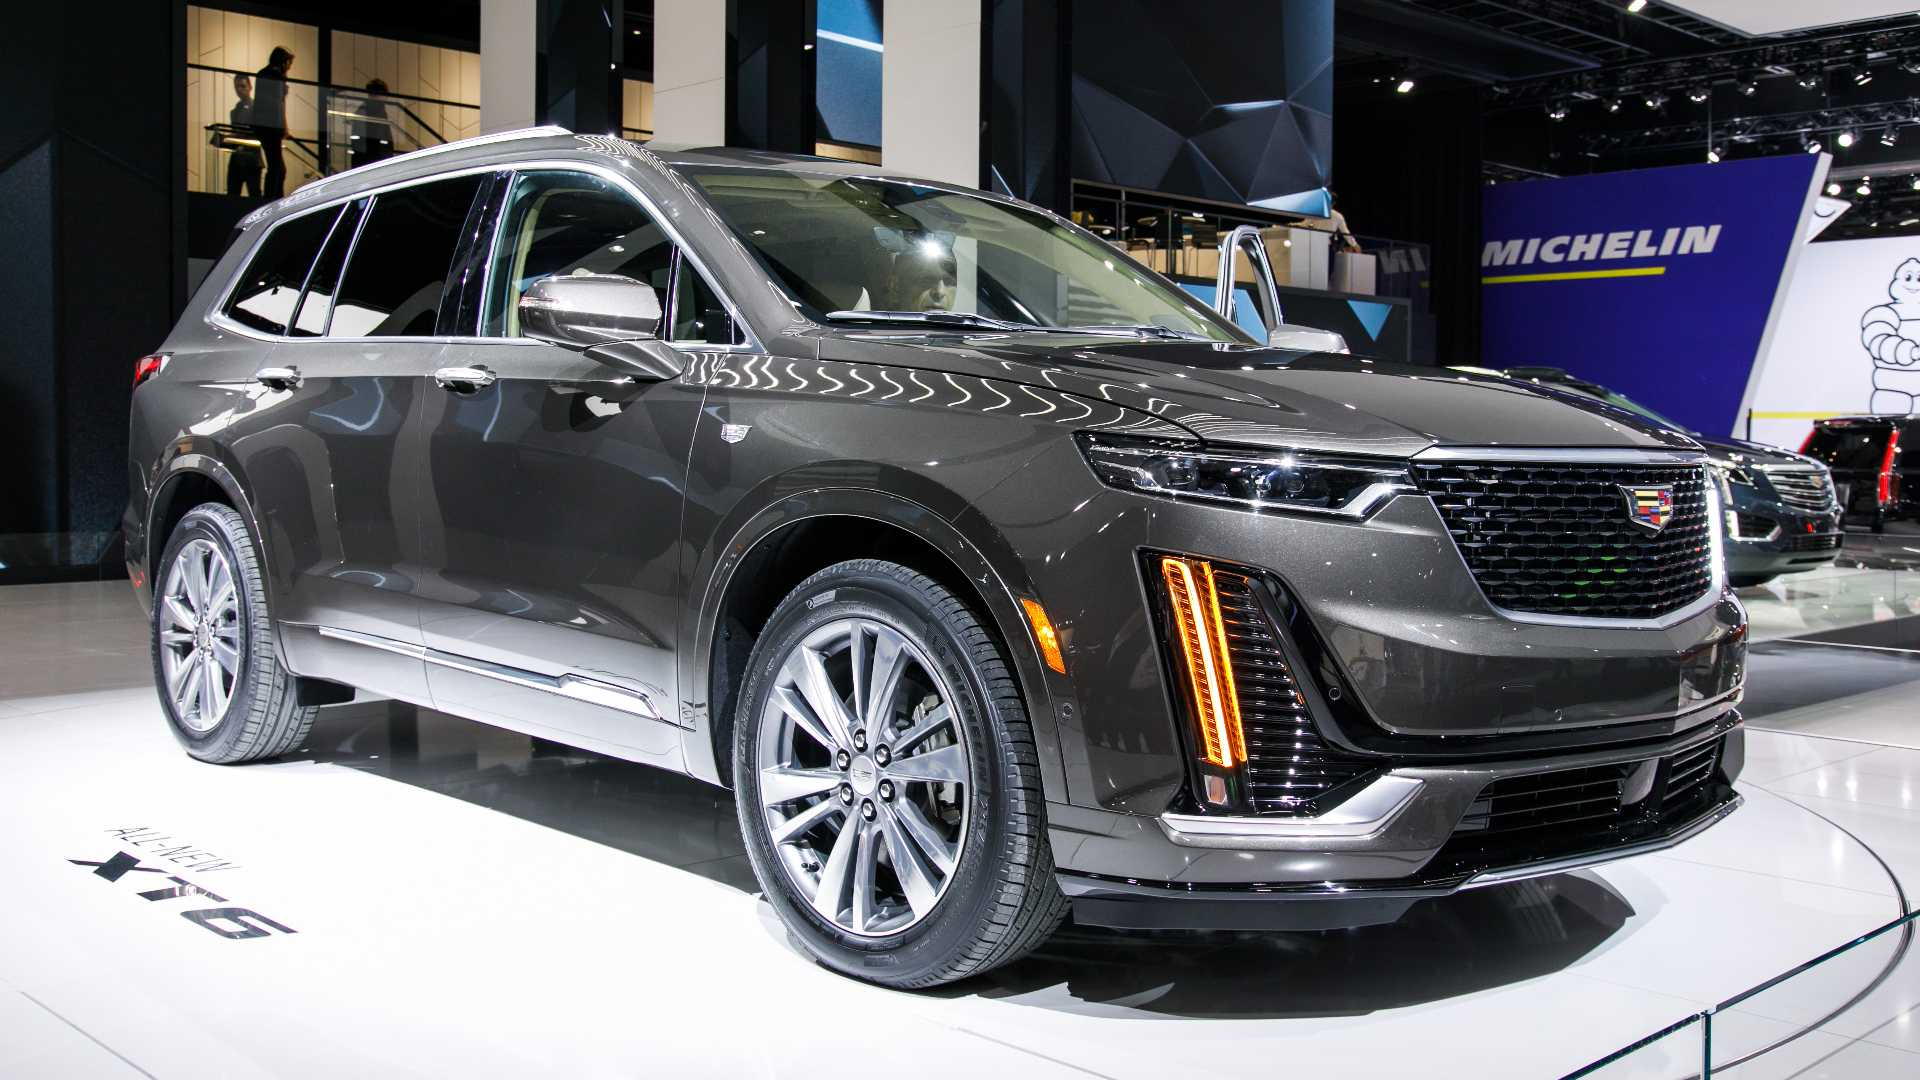 96 The 2020 Cadillac Xt6 Dimensions Speed Test